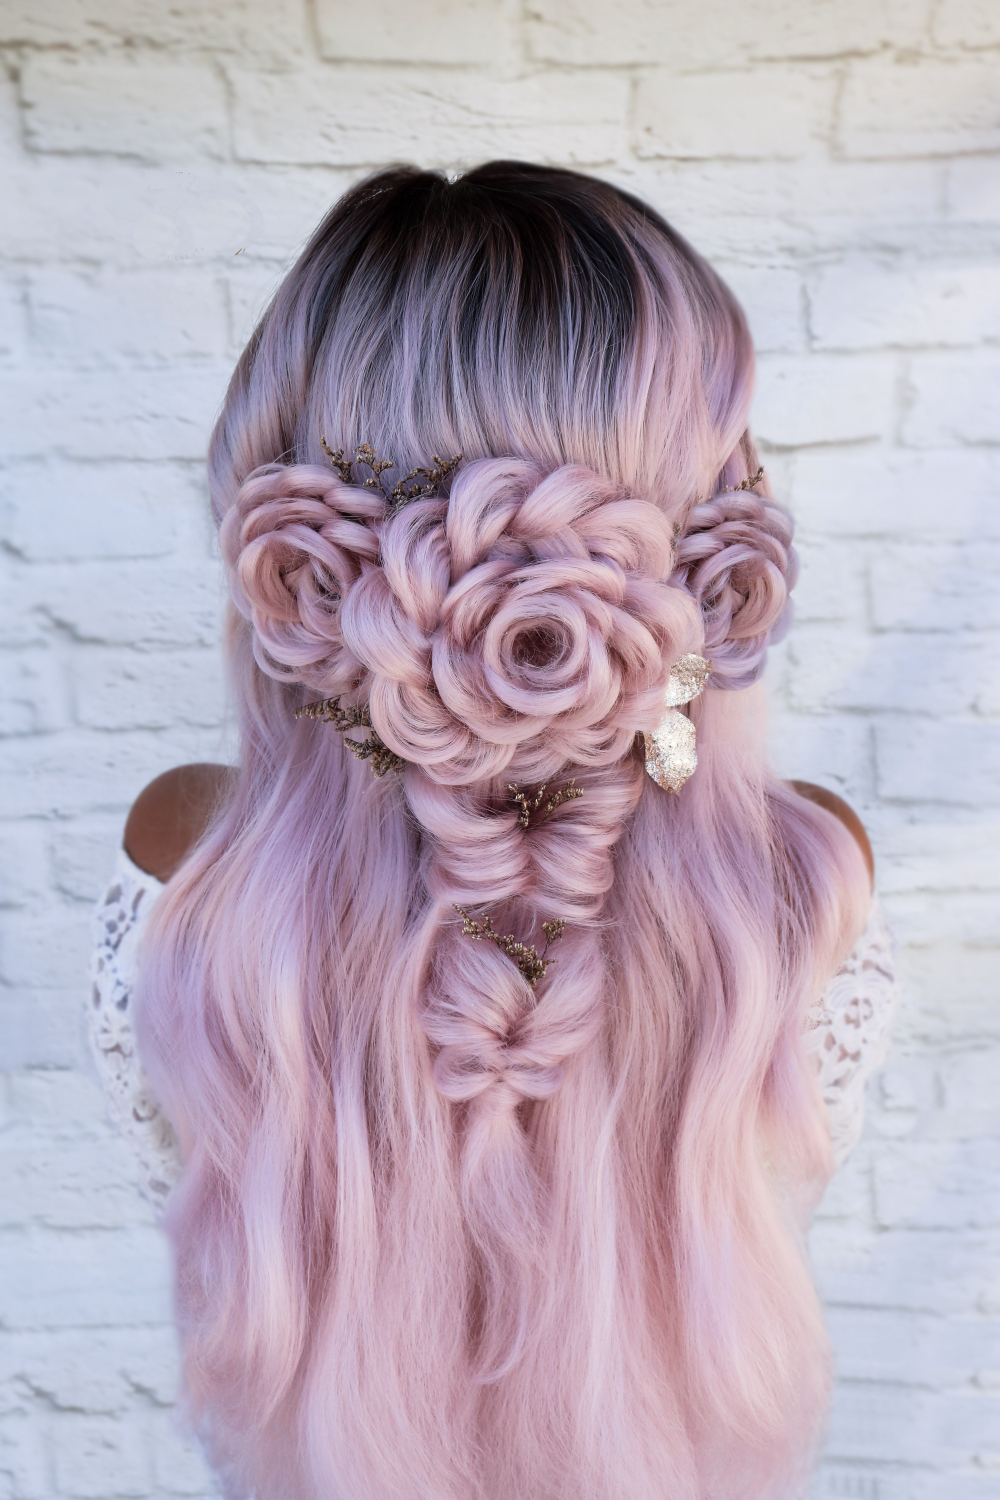 Party Pretty Top 5: Tis the Season for Holiday Hair Inspo